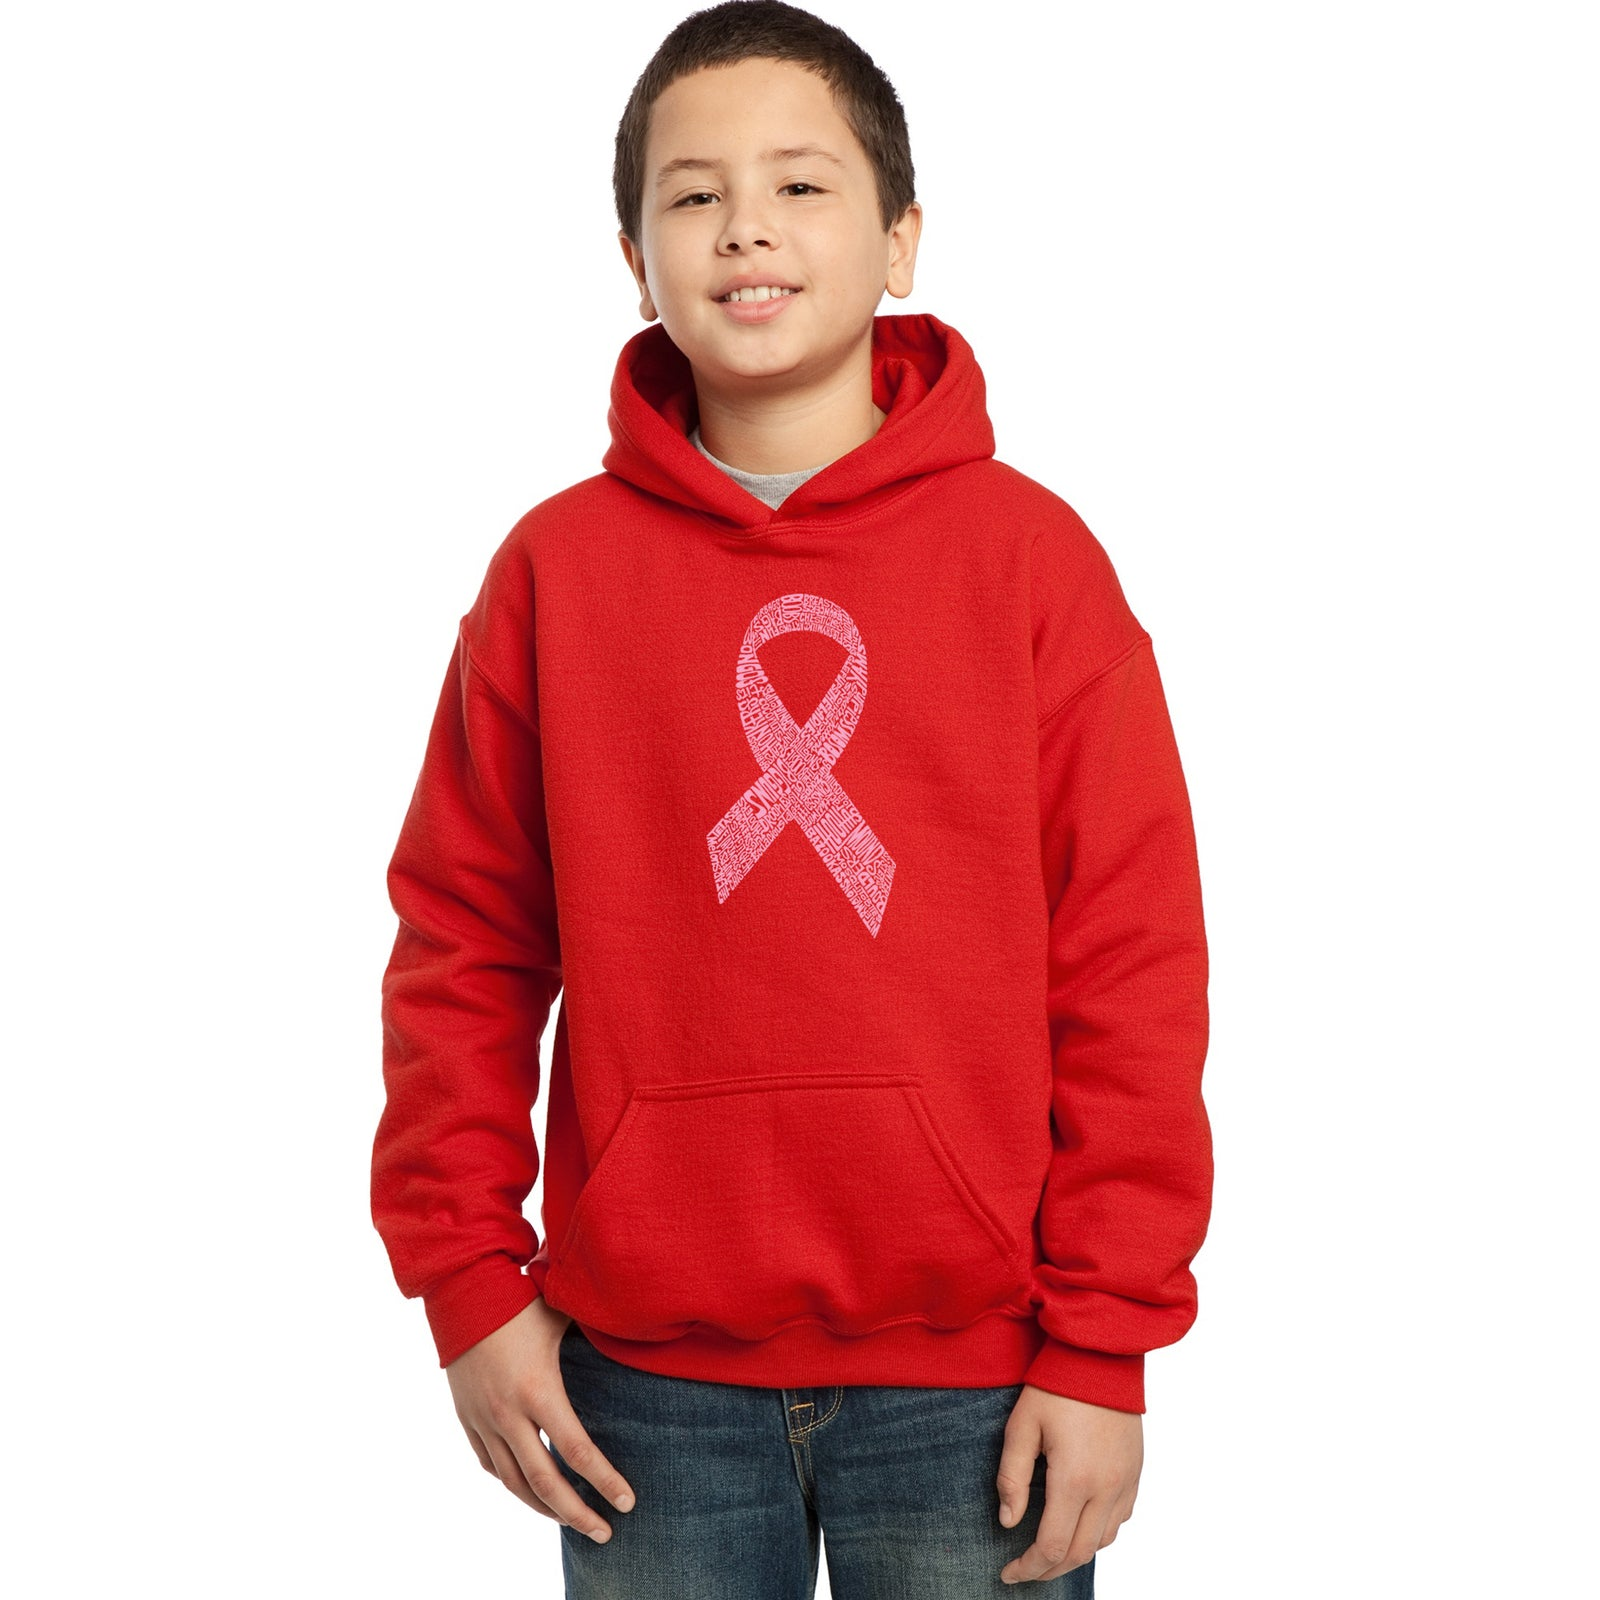 Boy's Hooded Sweatshirt - CREATED OUT OF 50 SLANG TERMS FOR BREASTS